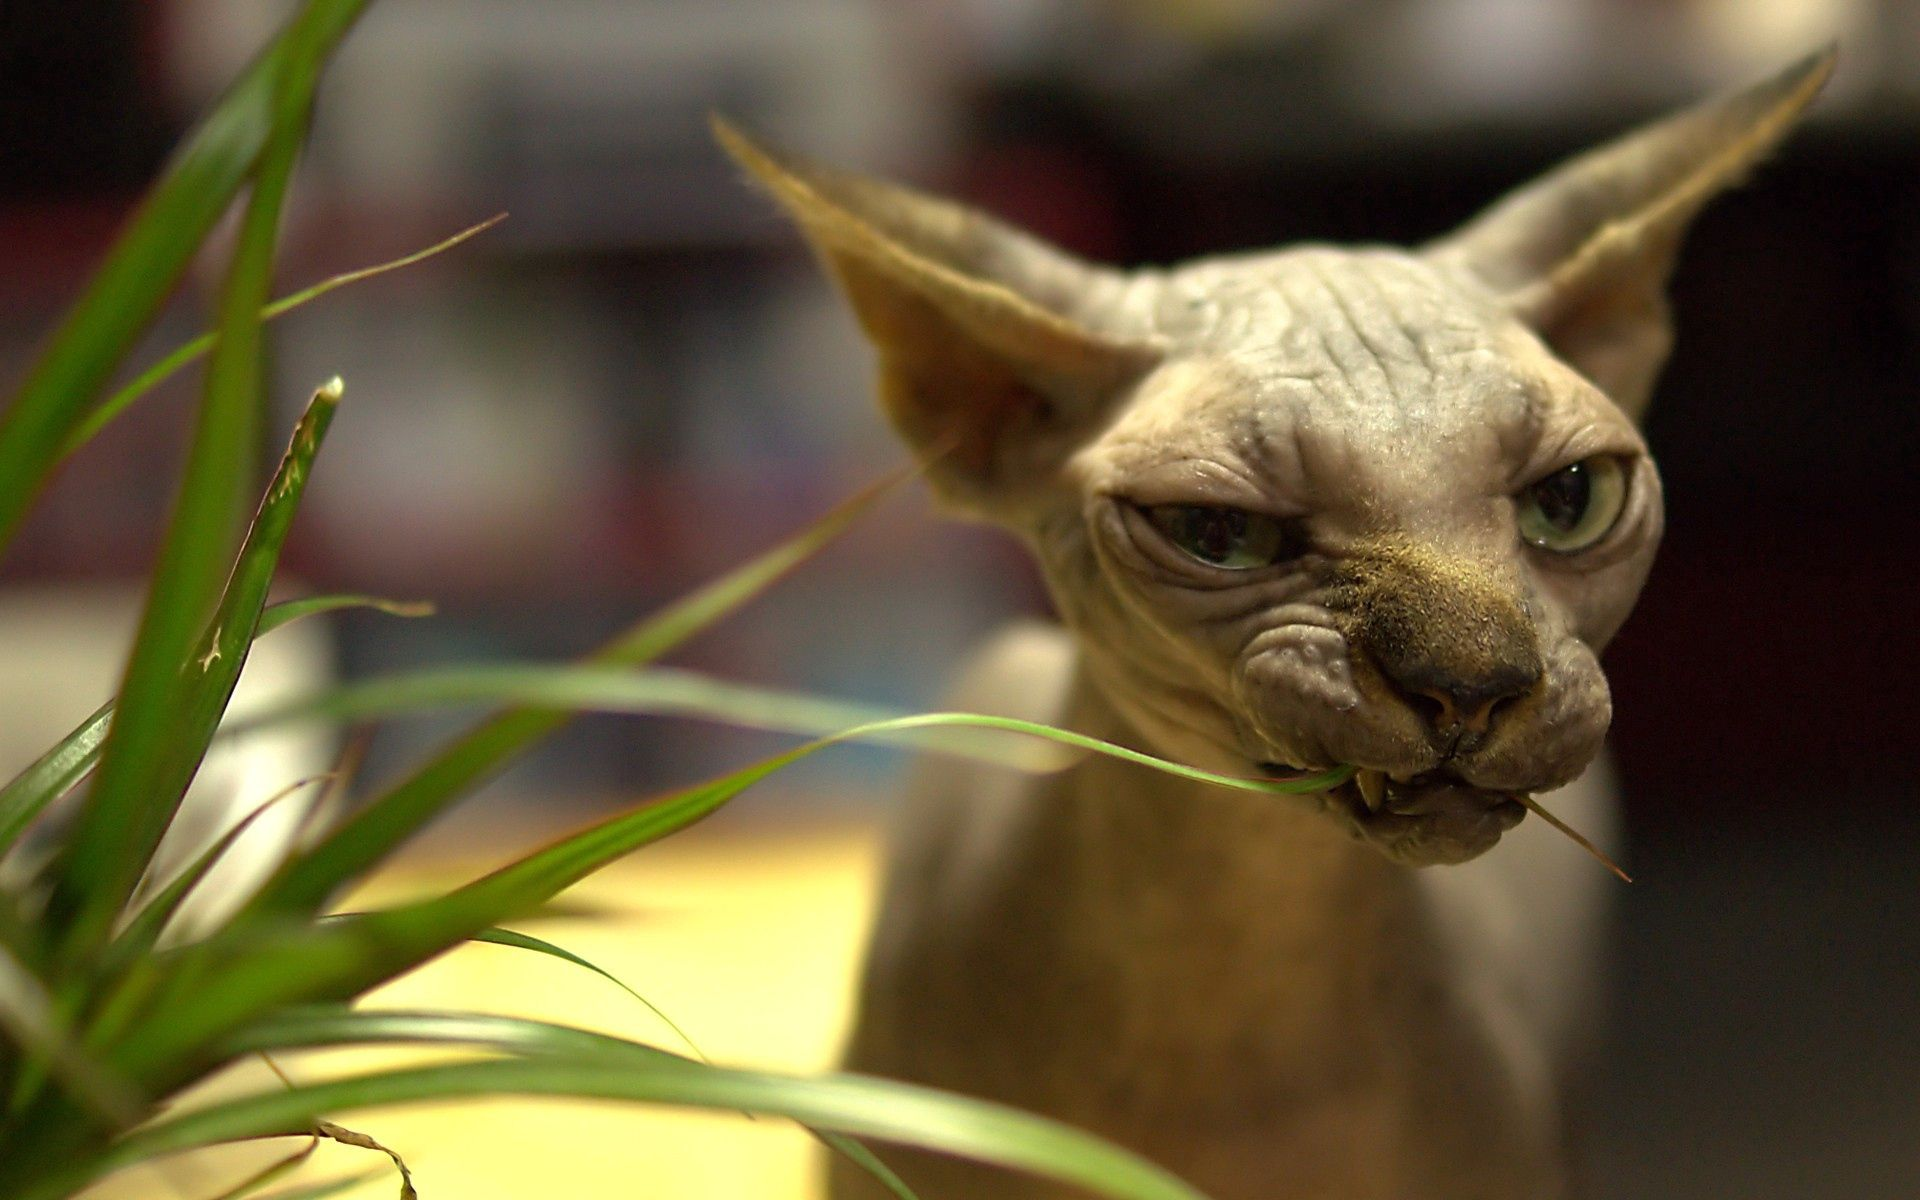 64771 download wallpaper Animals, Grass, Sphinx, Cat, Muzzle, Wrinkles screensavers and pictures for free